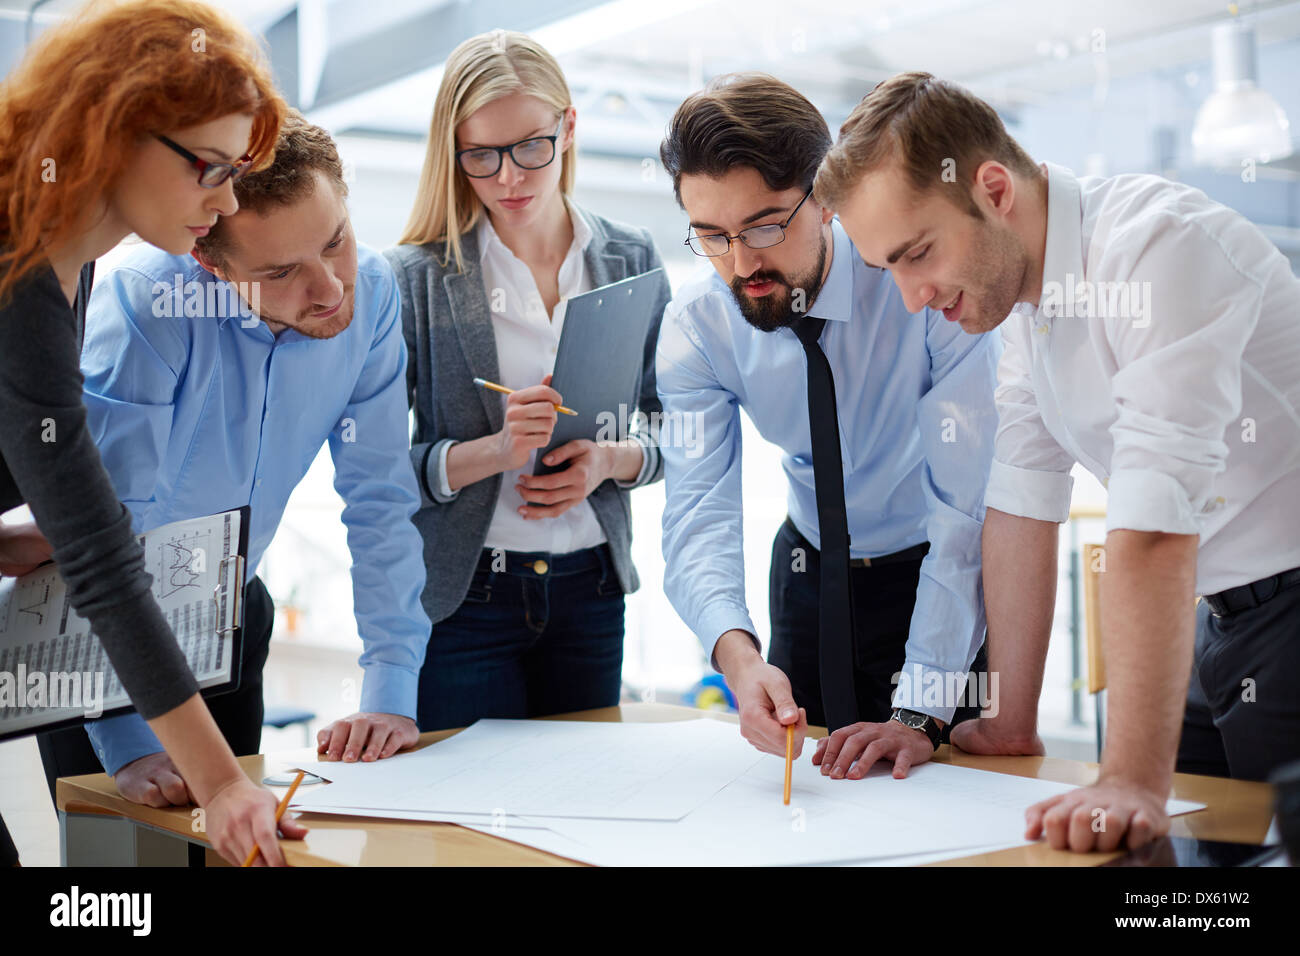 Business team developing plan together at the office - Stock Image